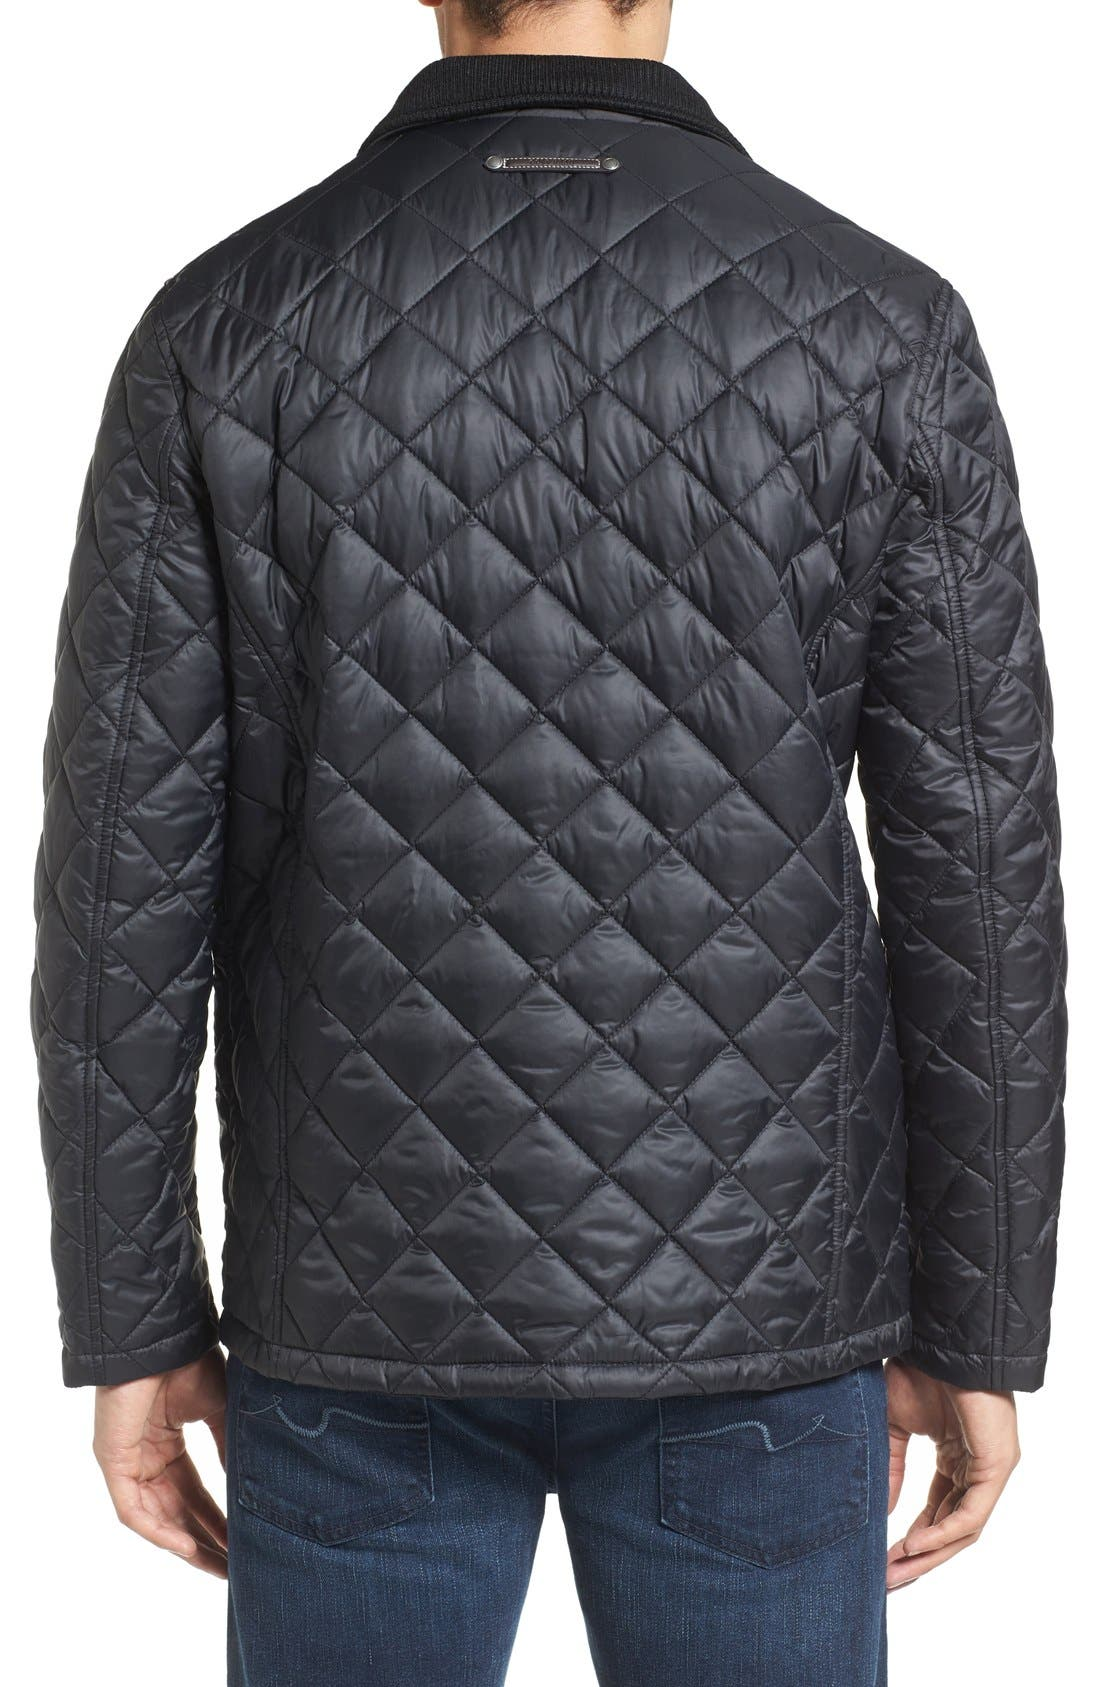 Diamond Quilted Jacket,                             Alternate thumbnail 12, color,                             Navy